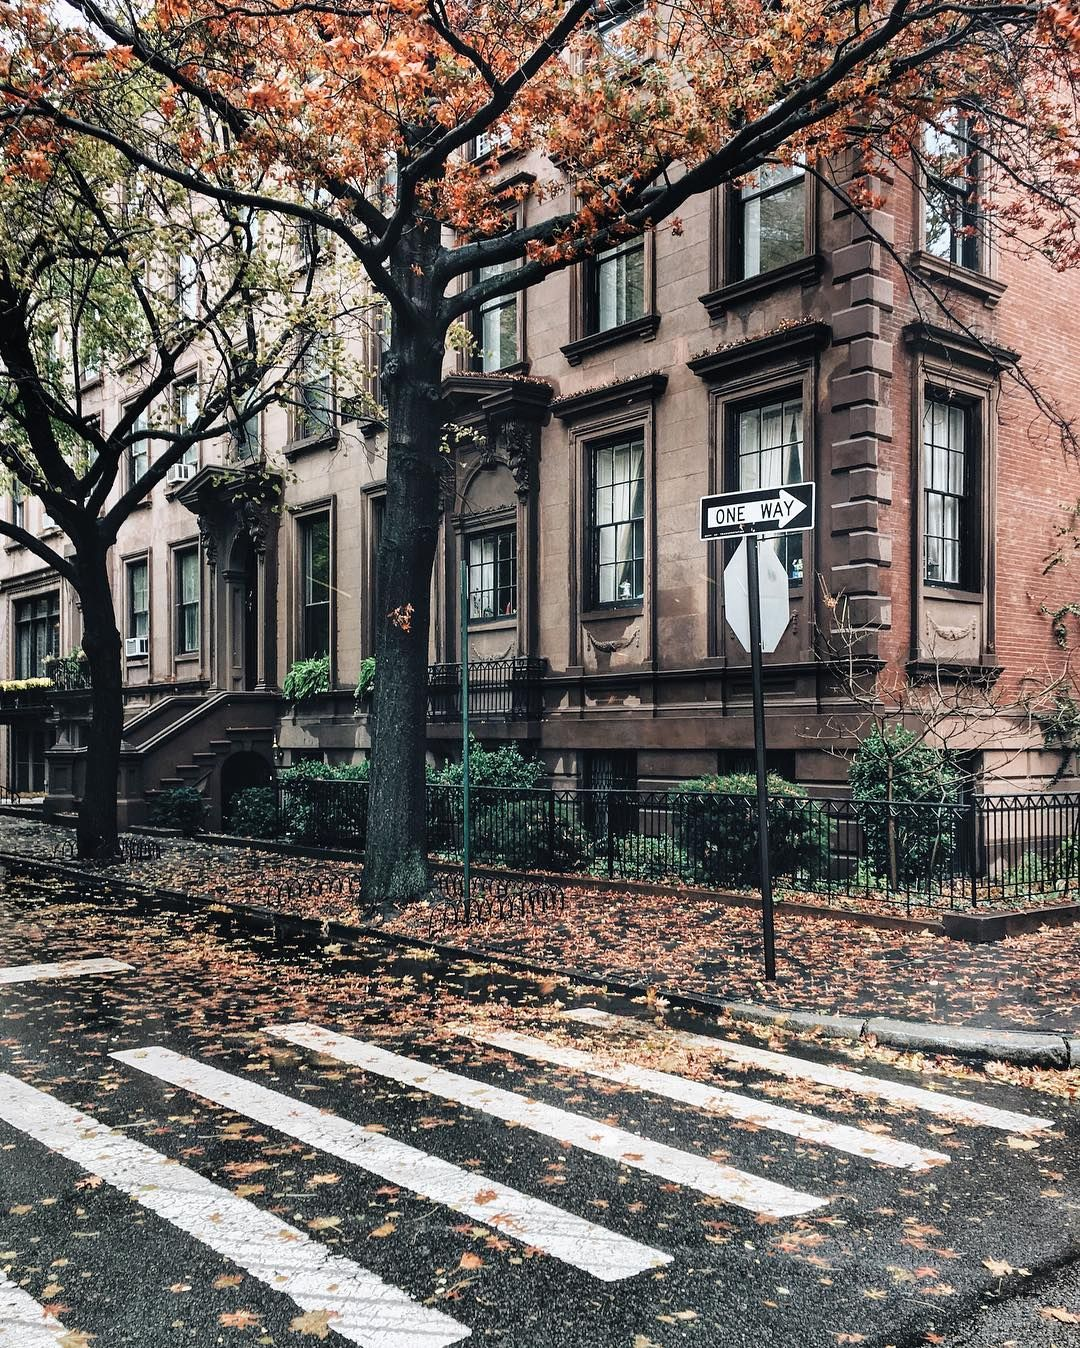 An evening of documentary films at the Brooklyn Historical Society with director Ric Burns will showcase the borough's past and present. #autumnphotography